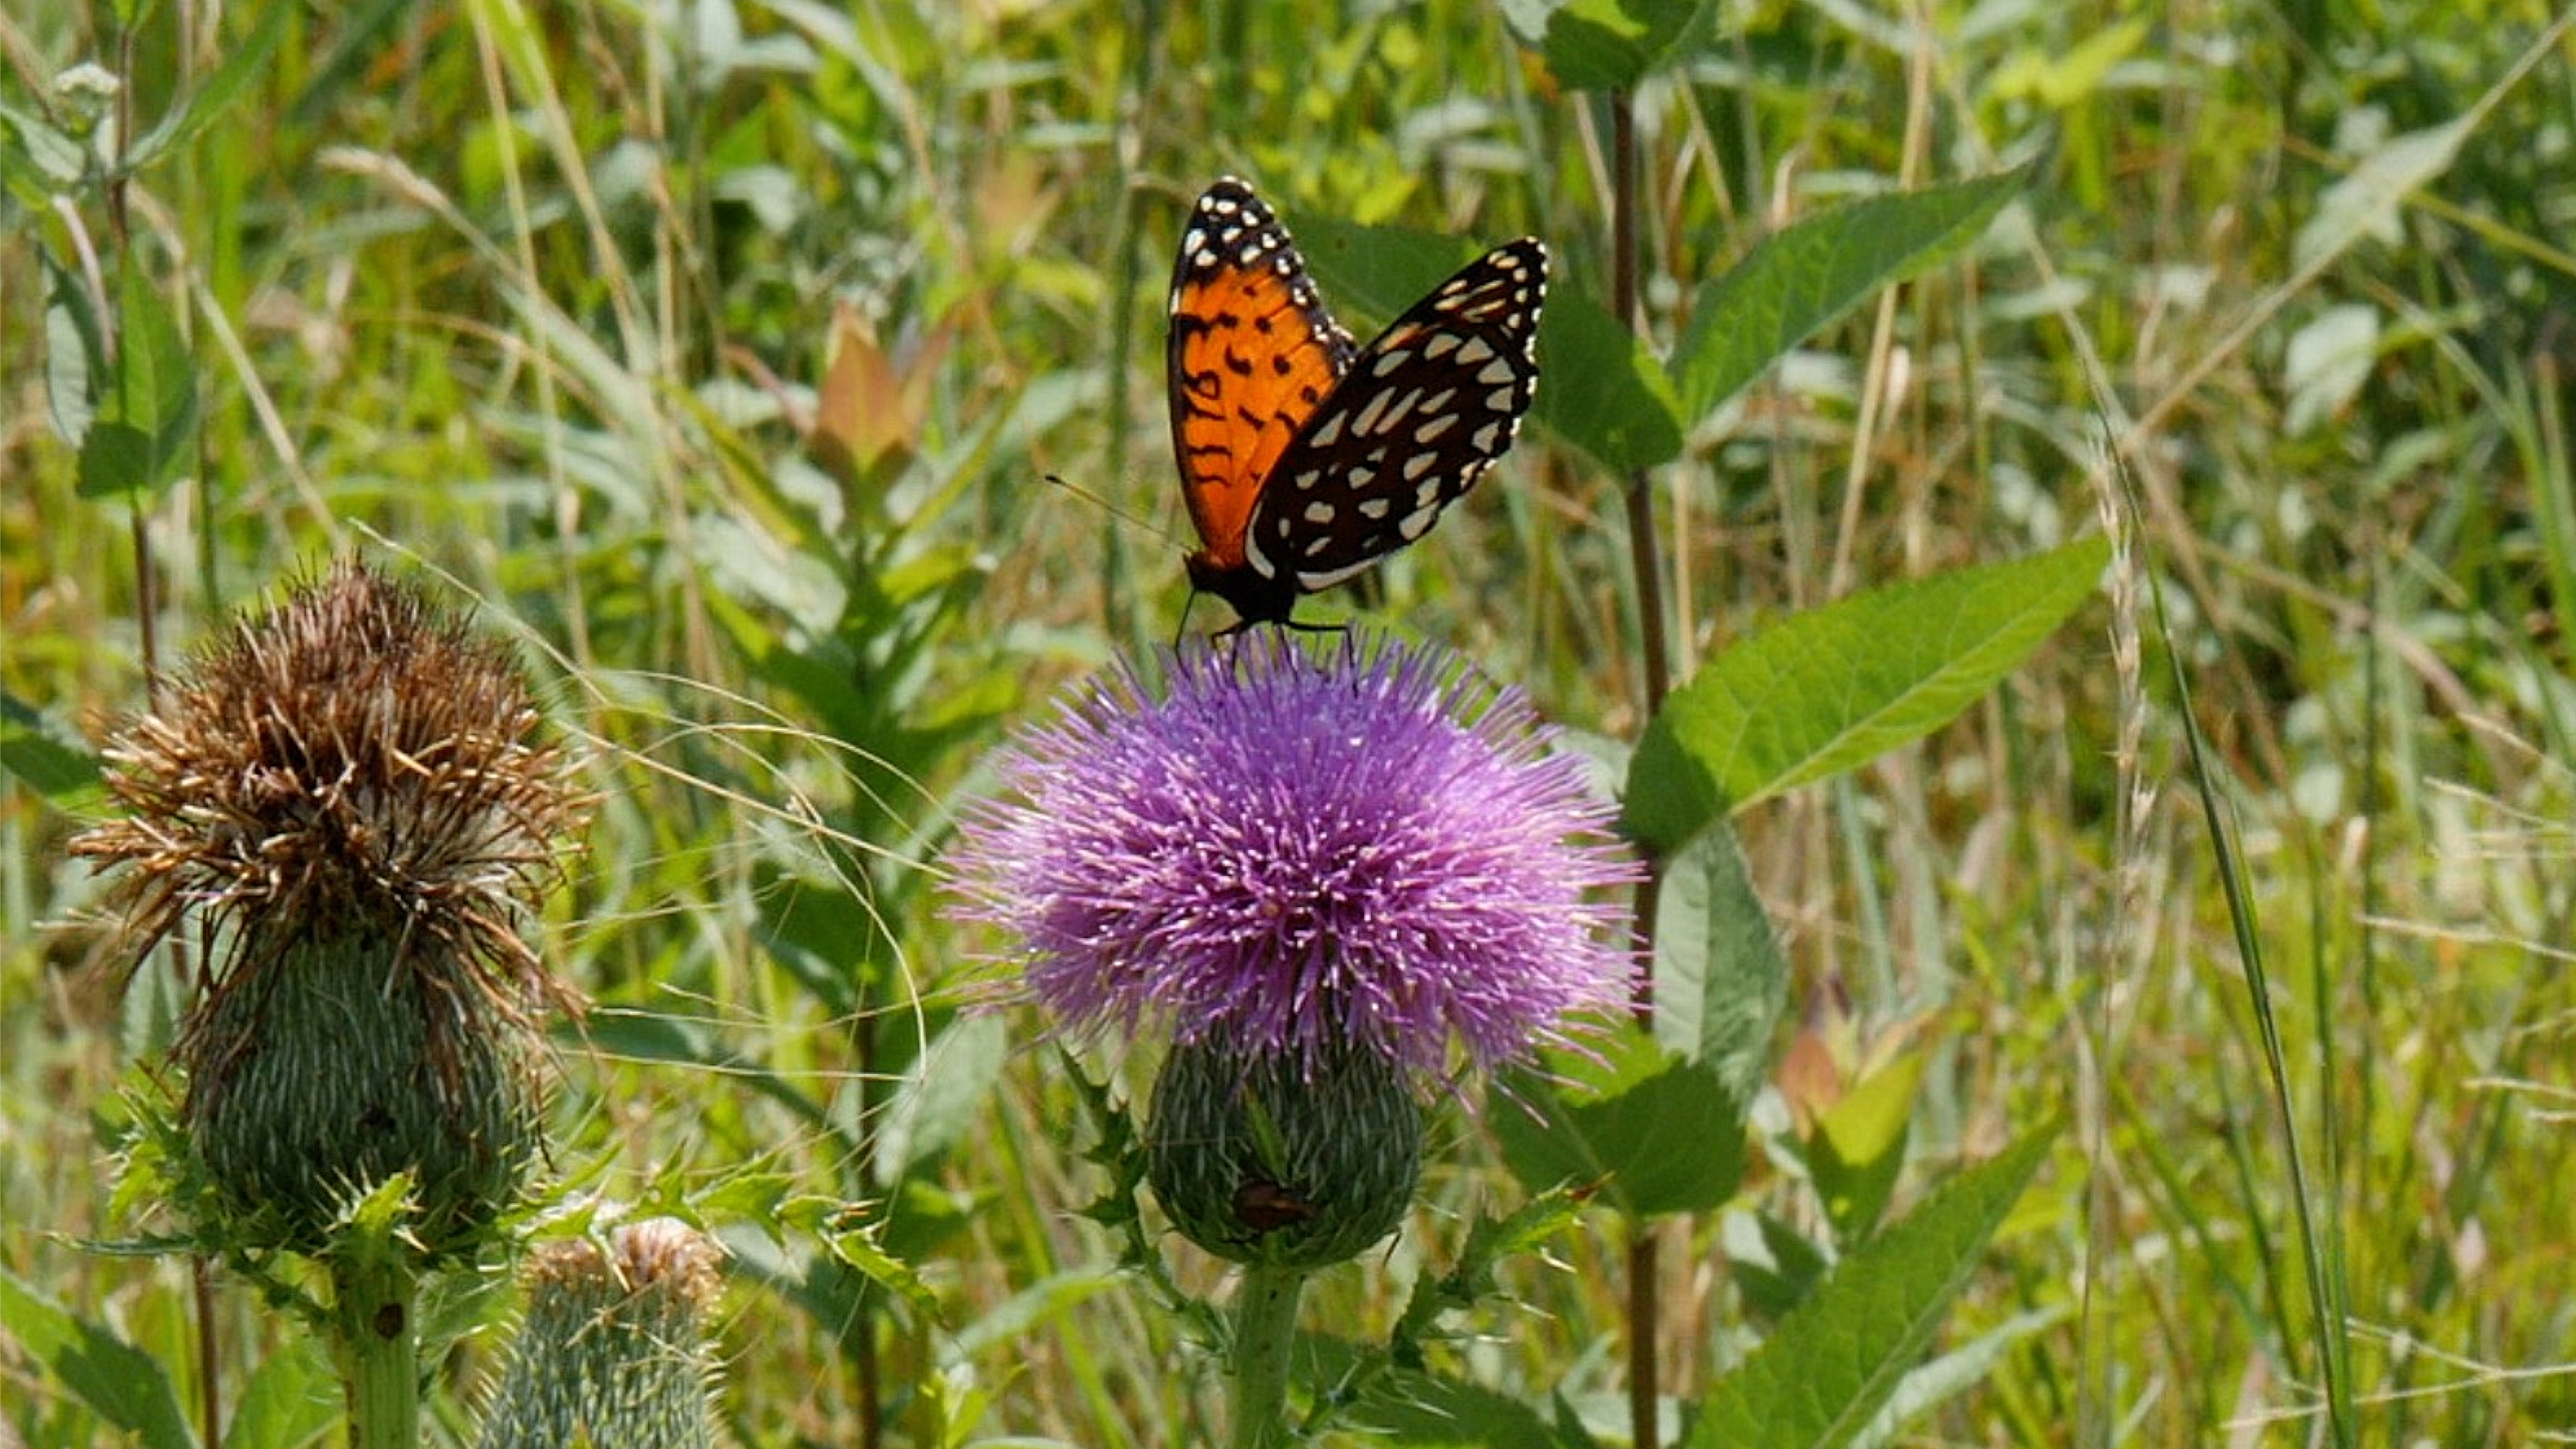 Catching Sight Of A Rare Butterfly In A Surprise Refuge